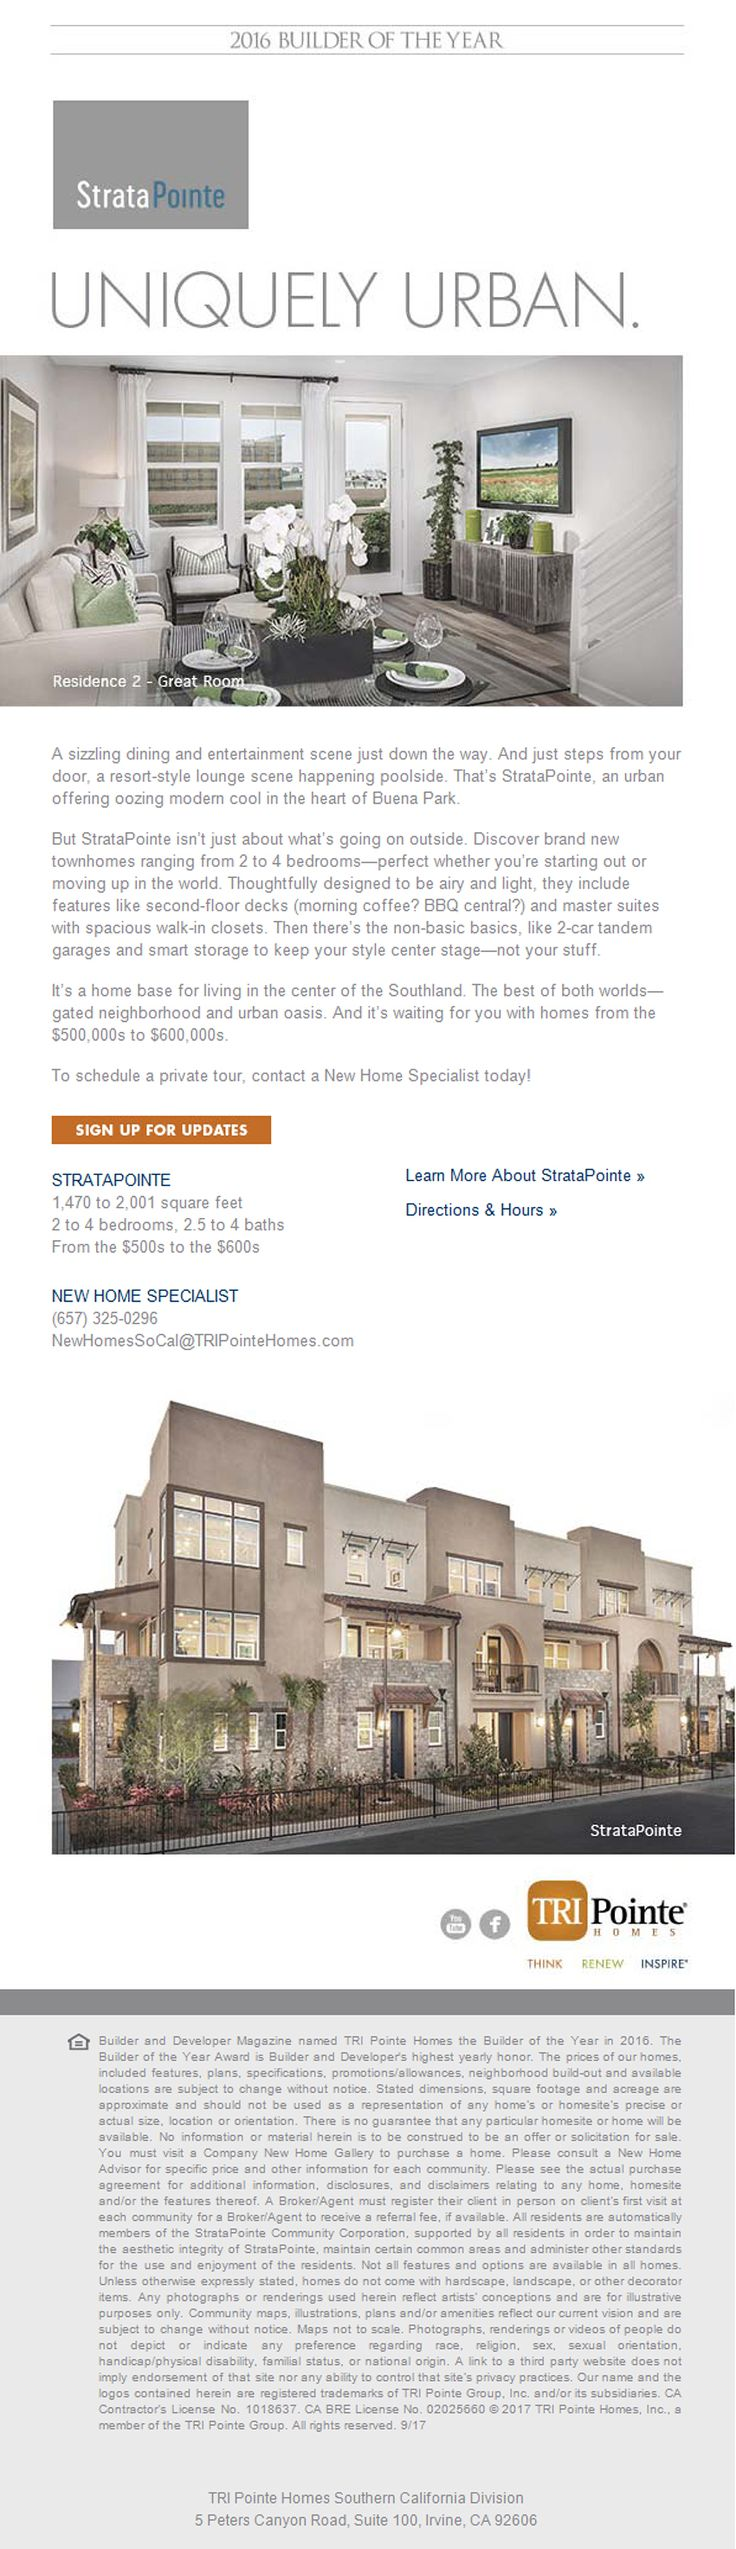 New Homes for Sale in Buena Park, California  StrataPointe in Buena Park: Cool, Modern and Urban New Townhomes  Private, Gated Collection of Townhomes minutes away from entertainment and shopping complexes.  Master Suites with Spacious Walk-In Closets  |   2nd Floor Decks   |  2-Car Tandem Garages  & Smart Storage!  Schedule a Private Tour Today!  For more Details: https://www.tripointehomes.com/southern-california/stratapointe/